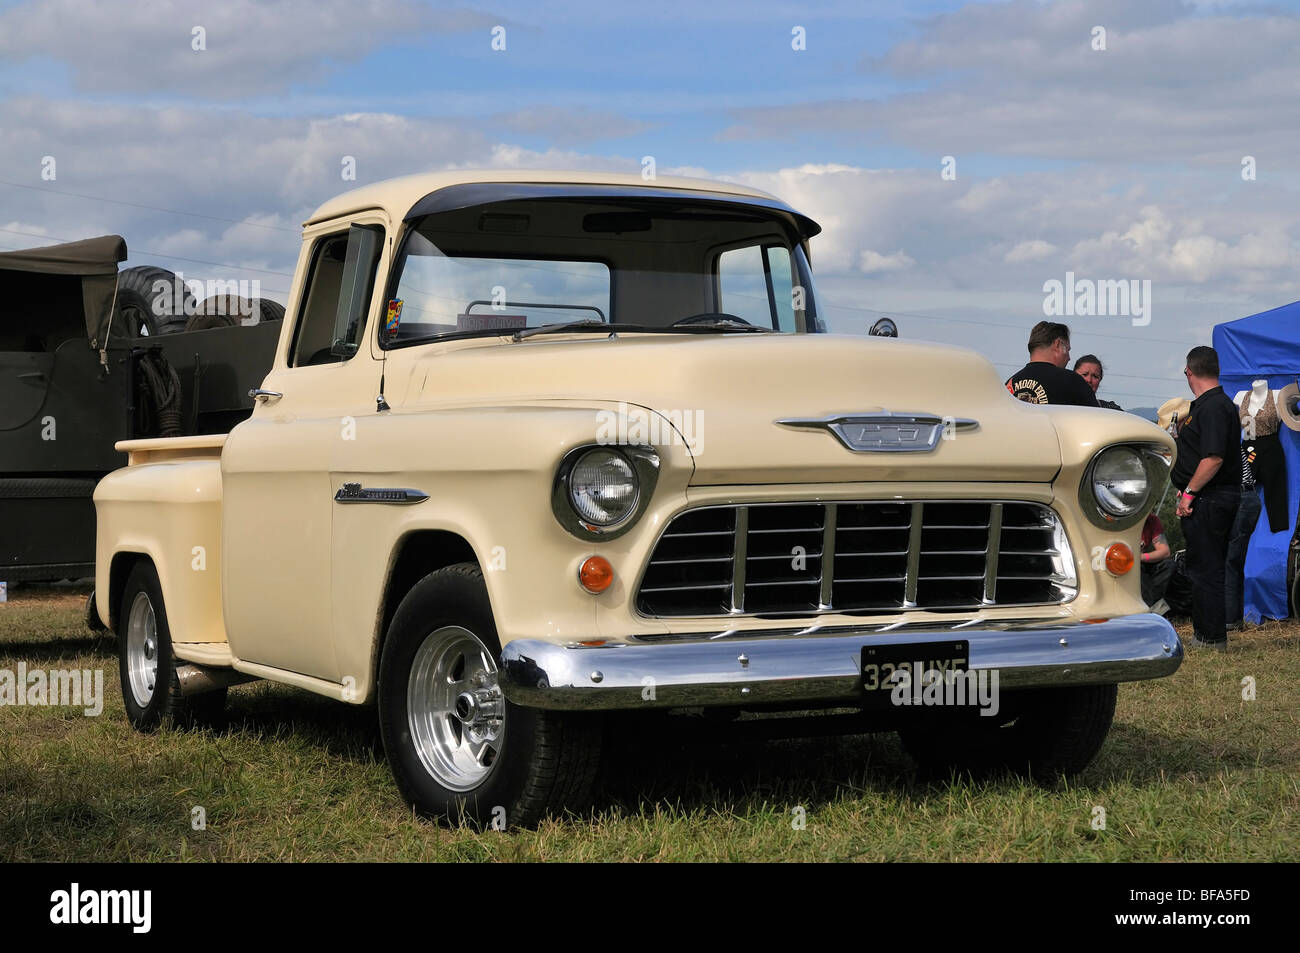 Pictures Of Old Chevy Pickup Trucks >> 1955 Chevy Stepside Pickup Truck Stock Photo: 26654081 - Alamy